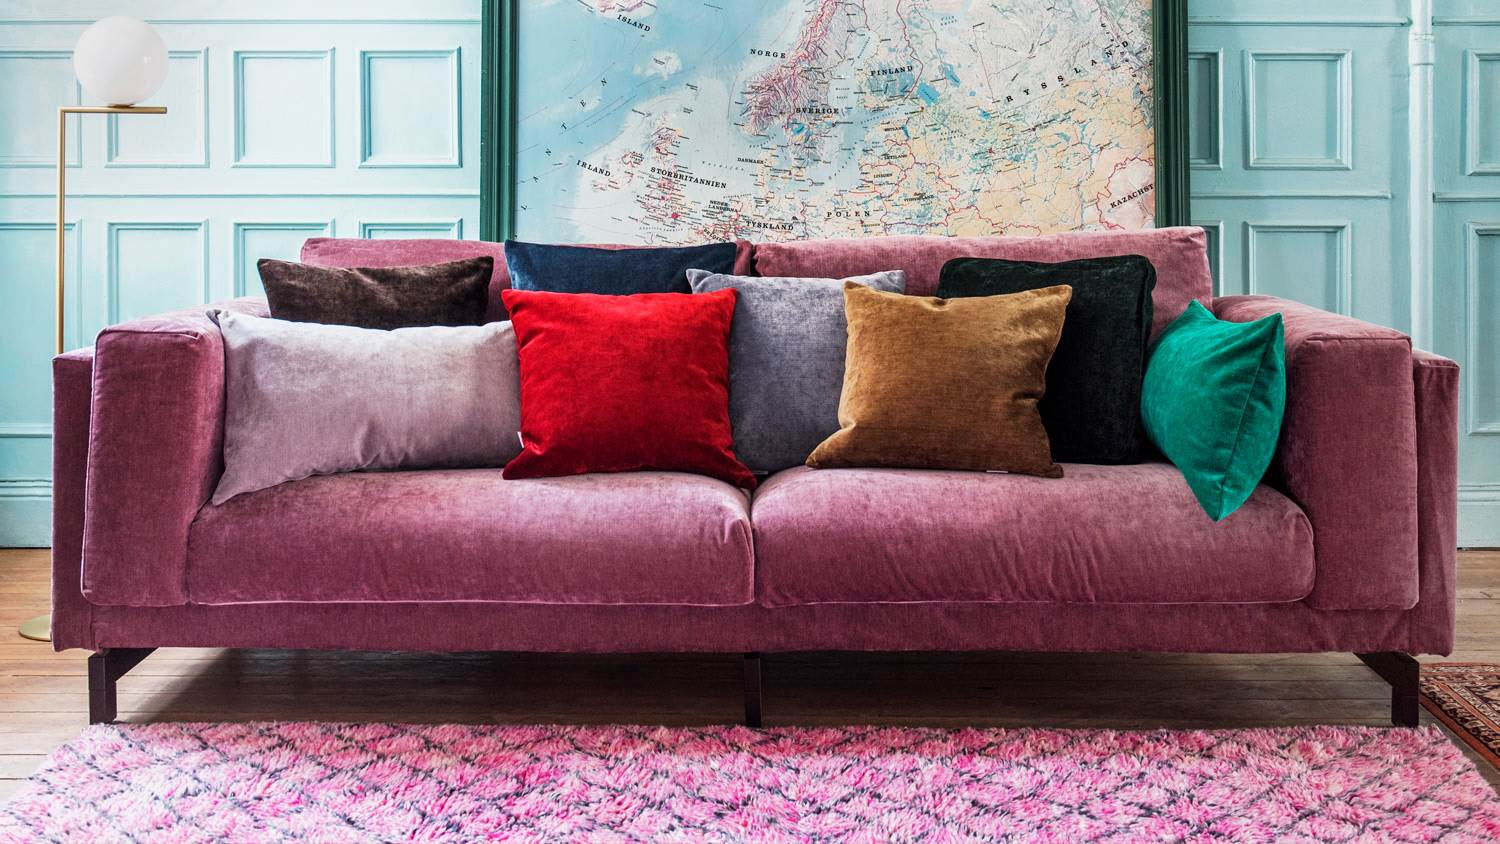 The Best Modern Slipcovers: A Stylish Shopping Guide | Apartment Therapy